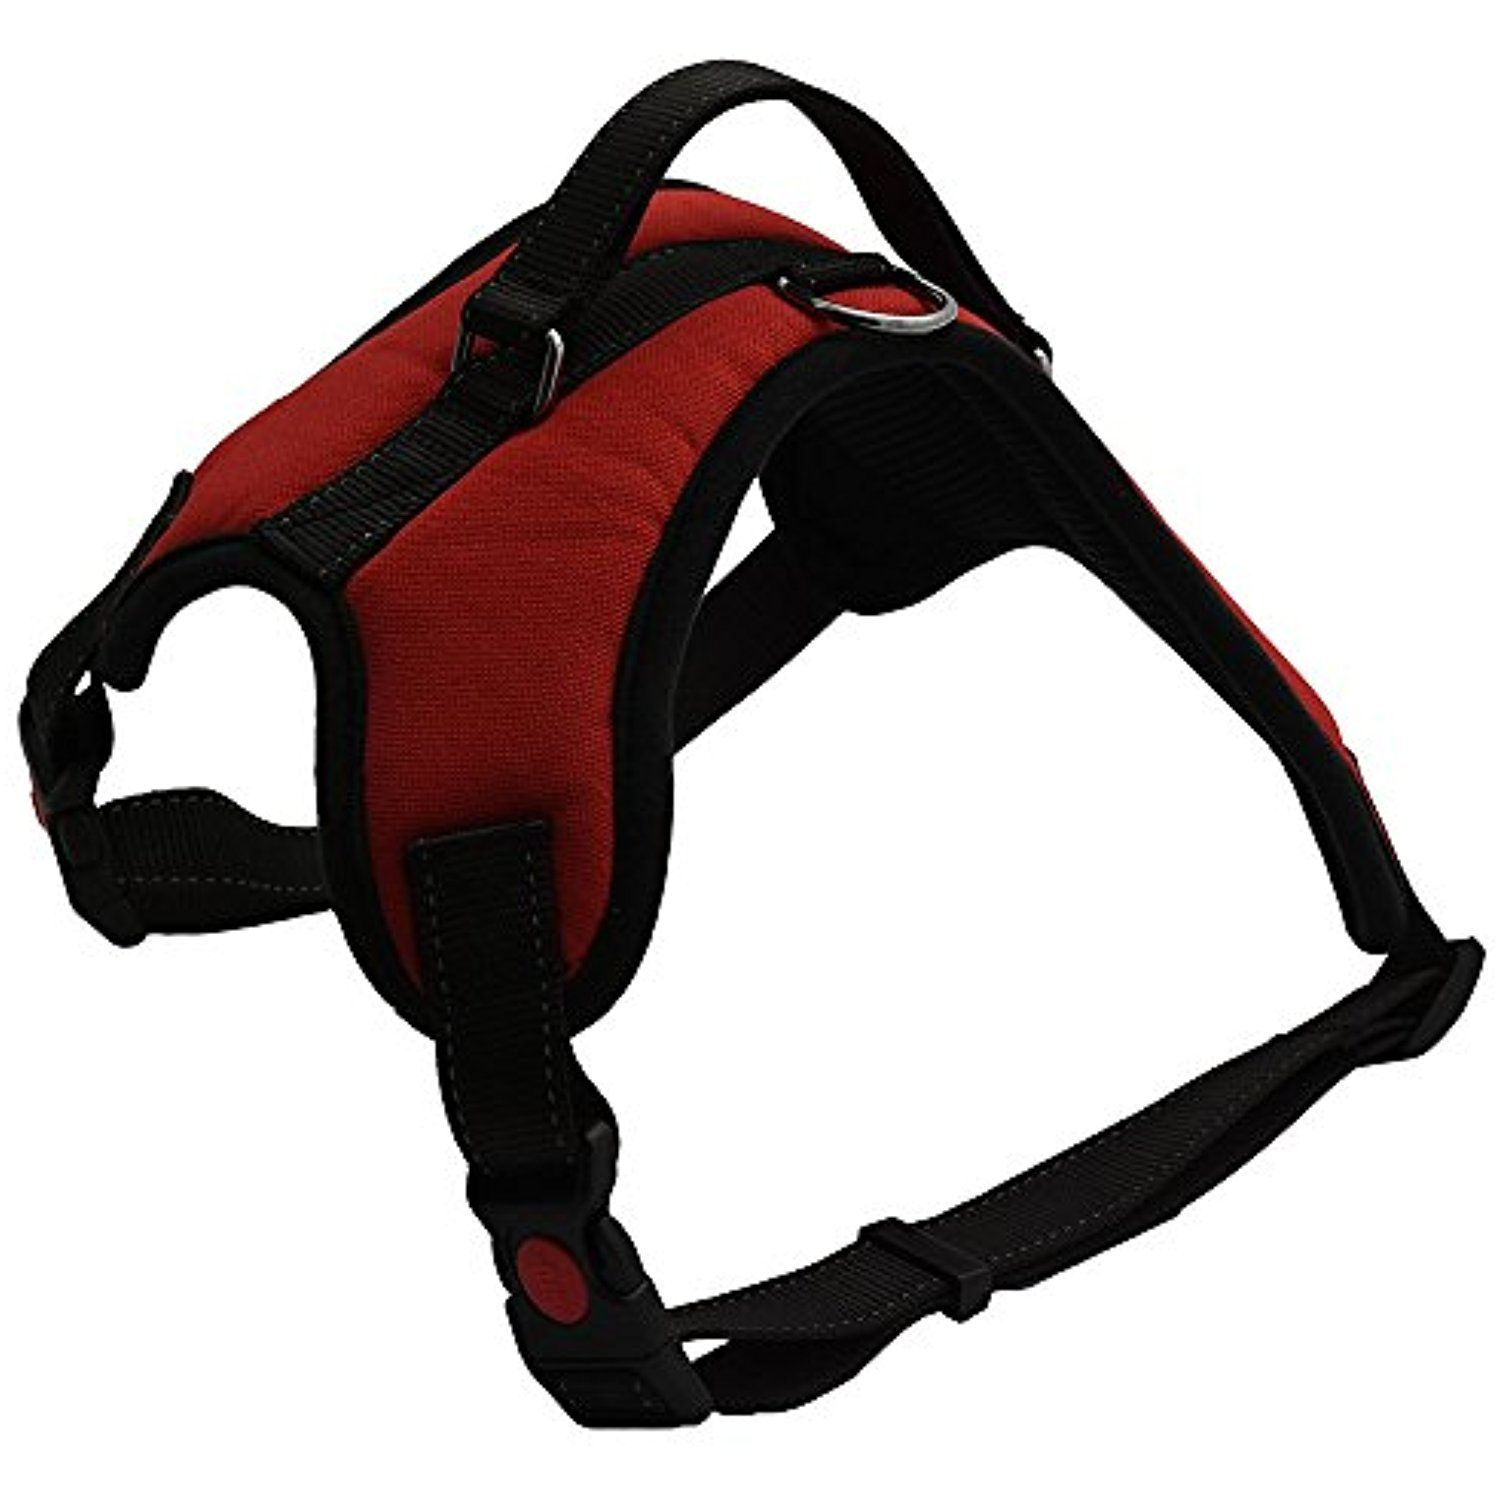 Dog Harness,Dog Vest,ARIKON No Pull Effect,Reflective